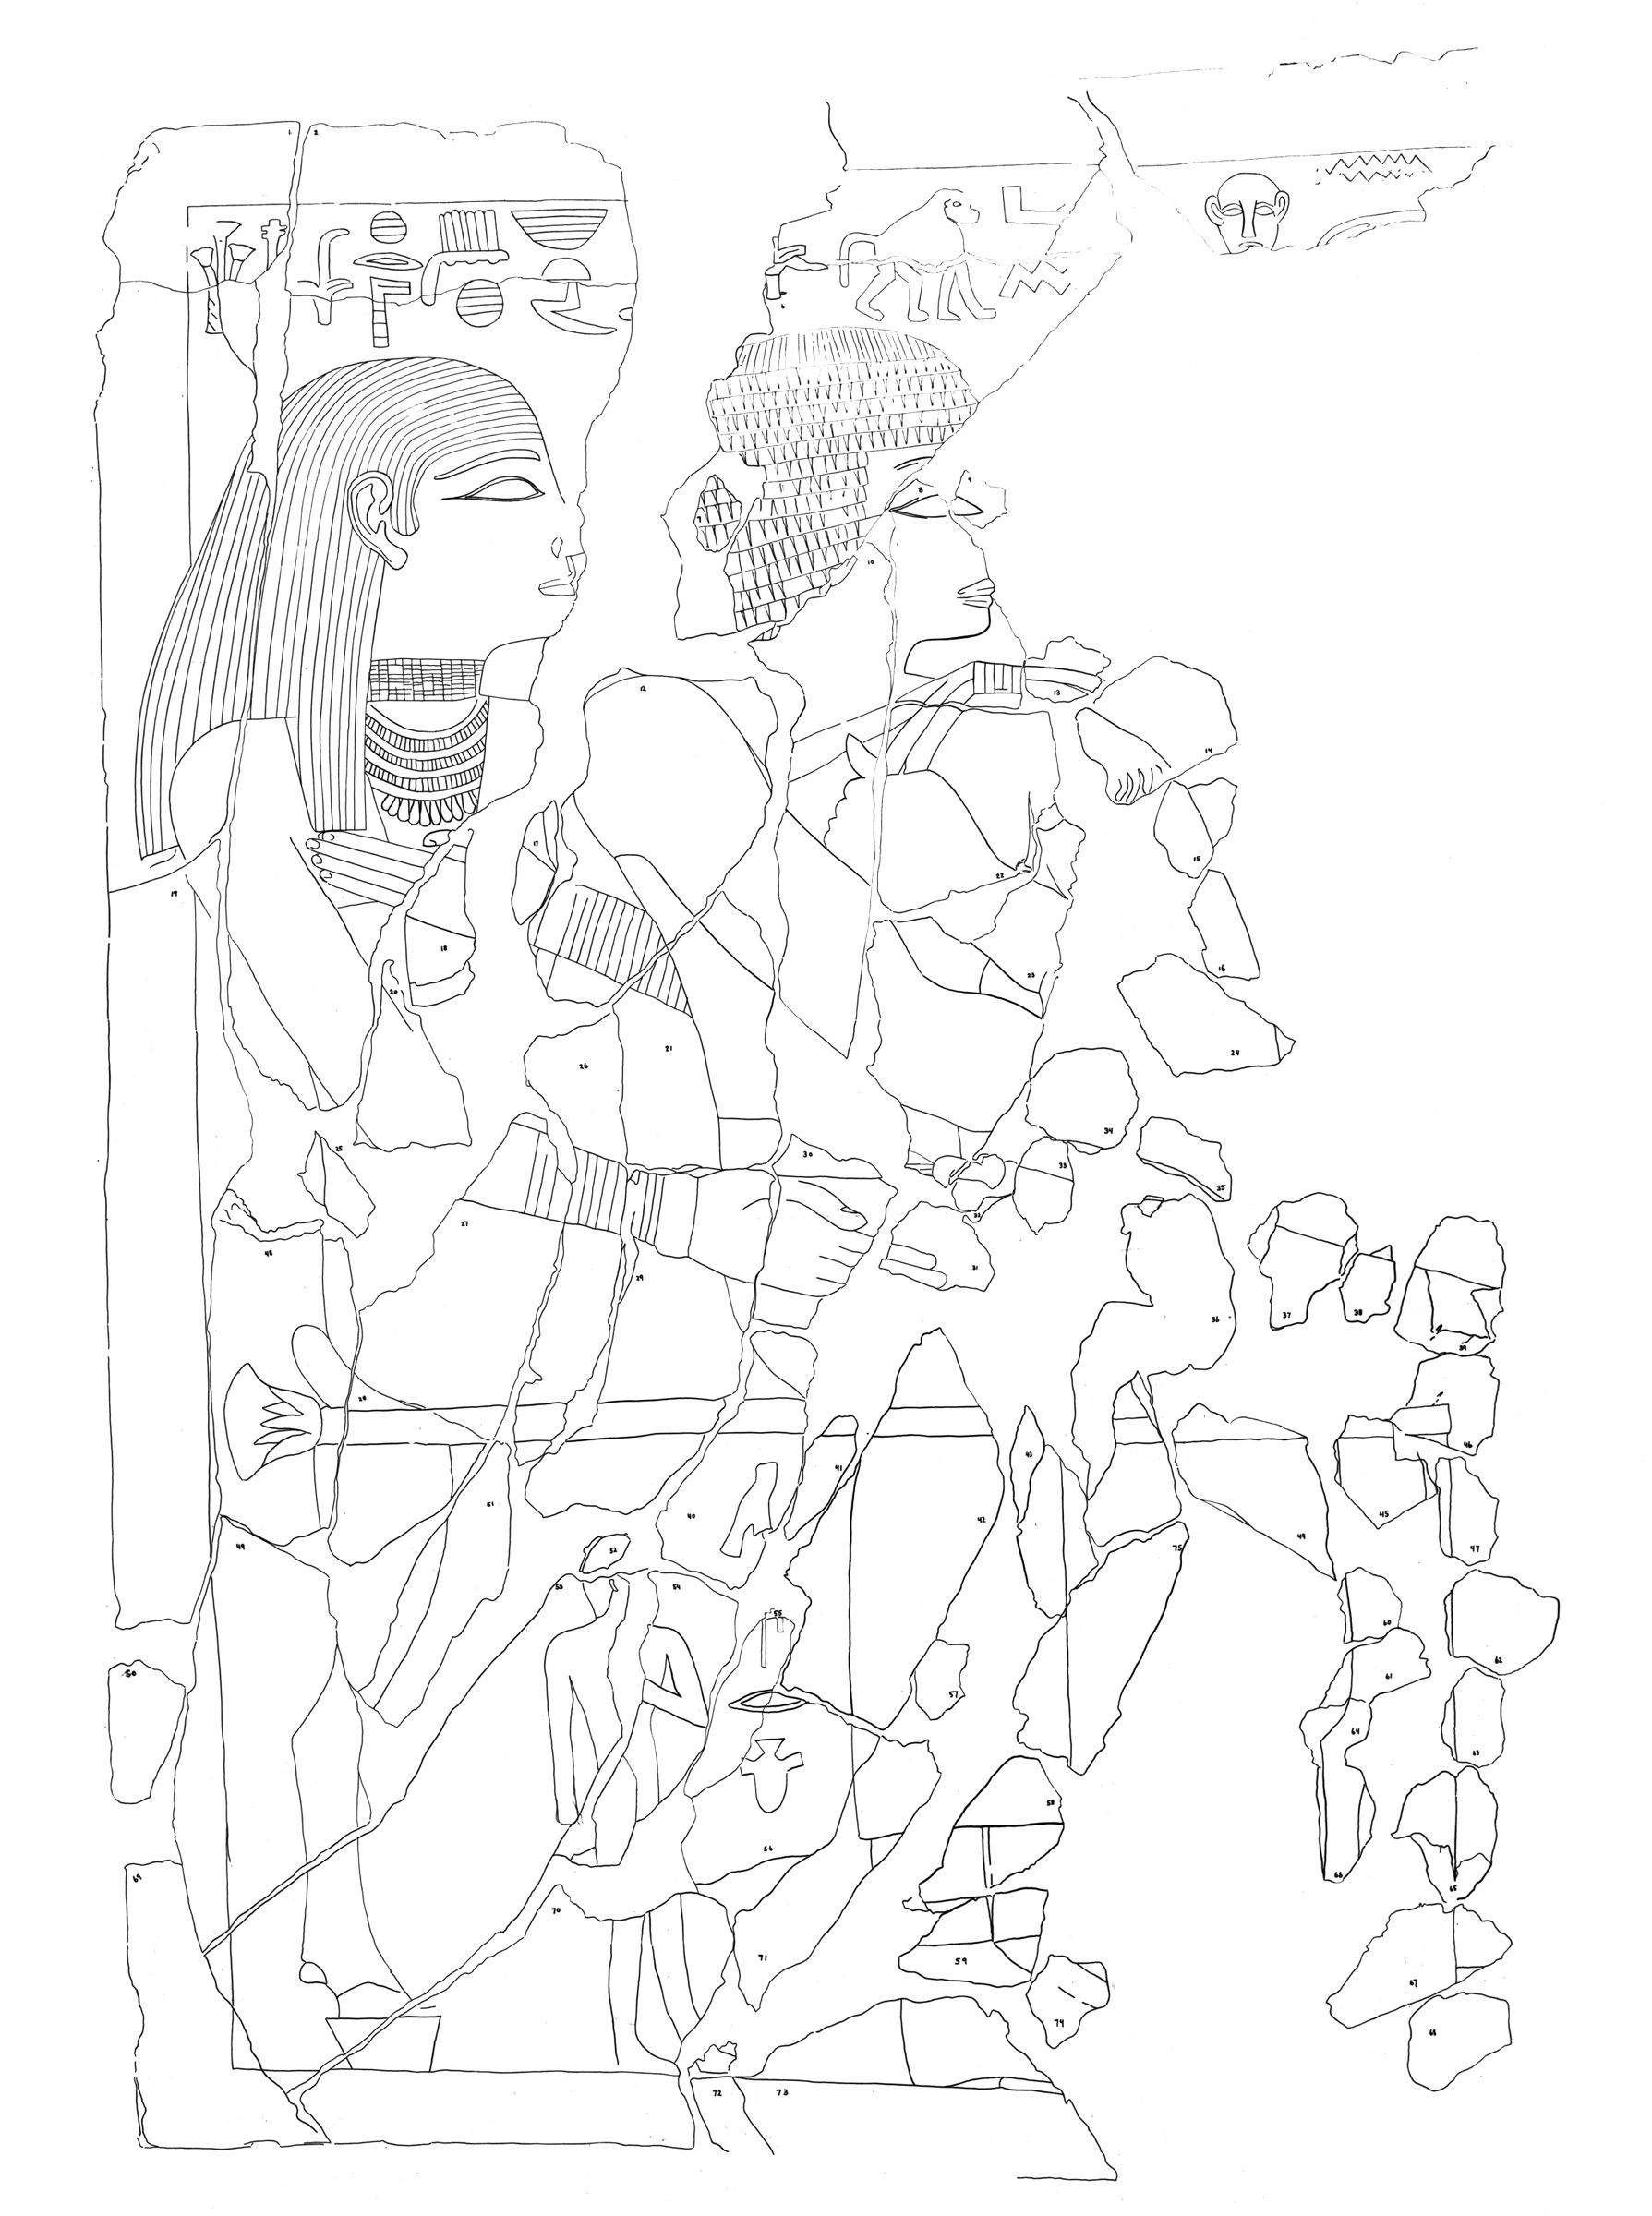 Drawings: G 1607: fragments of relief (reconstructed) from debris